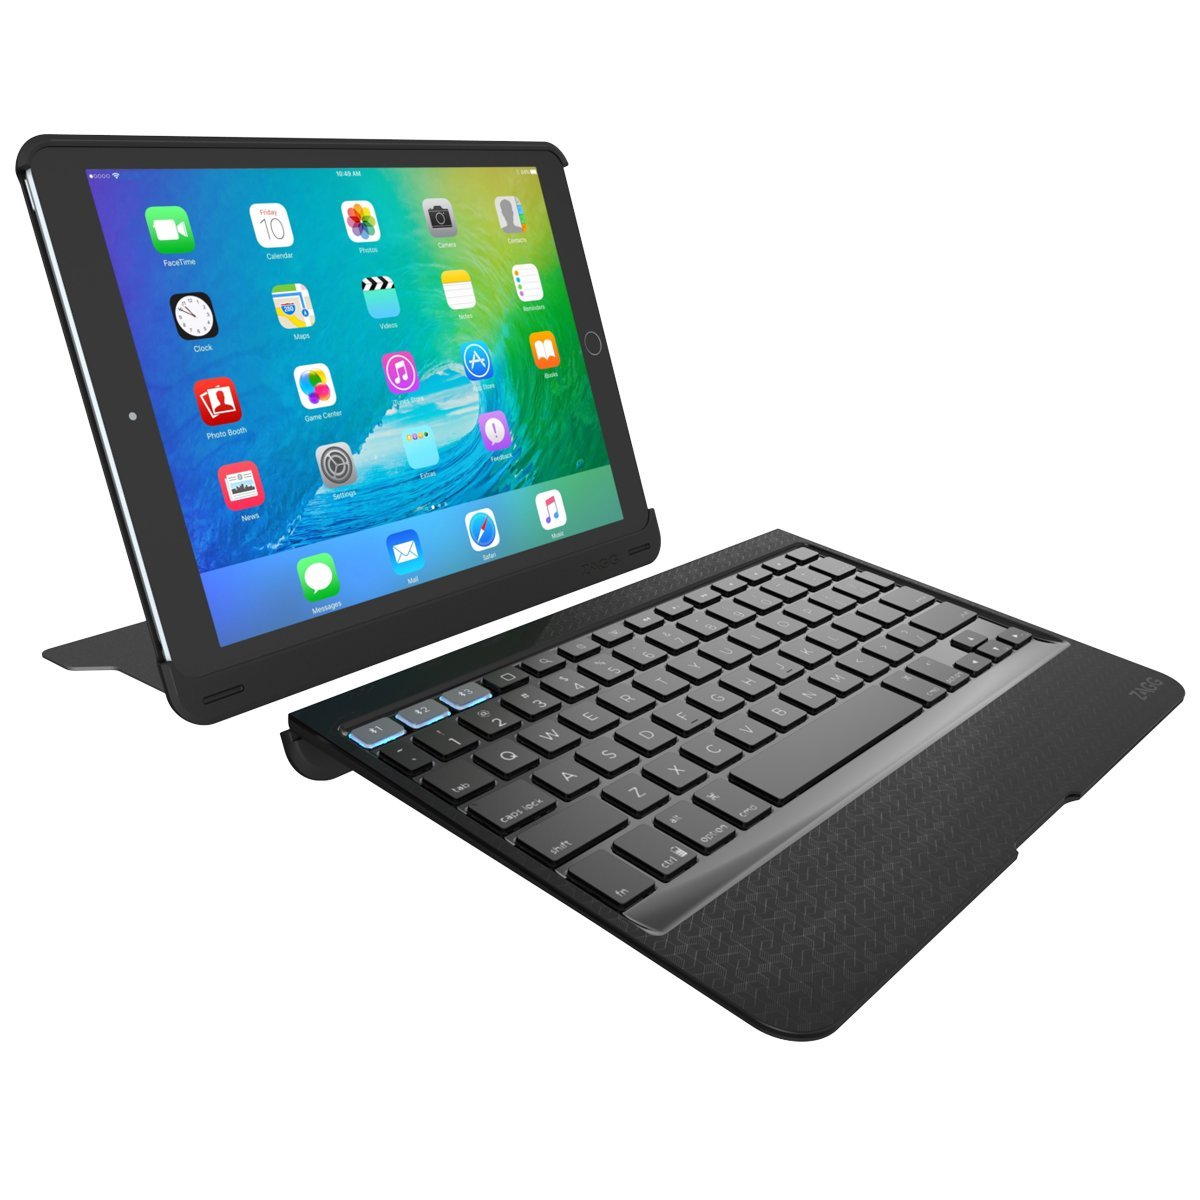 ZAGG Slim Book Pro Bluetooth Keyboard and Case for Apple iPad Pro 9.7 / iPad Air 2 with Kickstand - Black by ZAGG